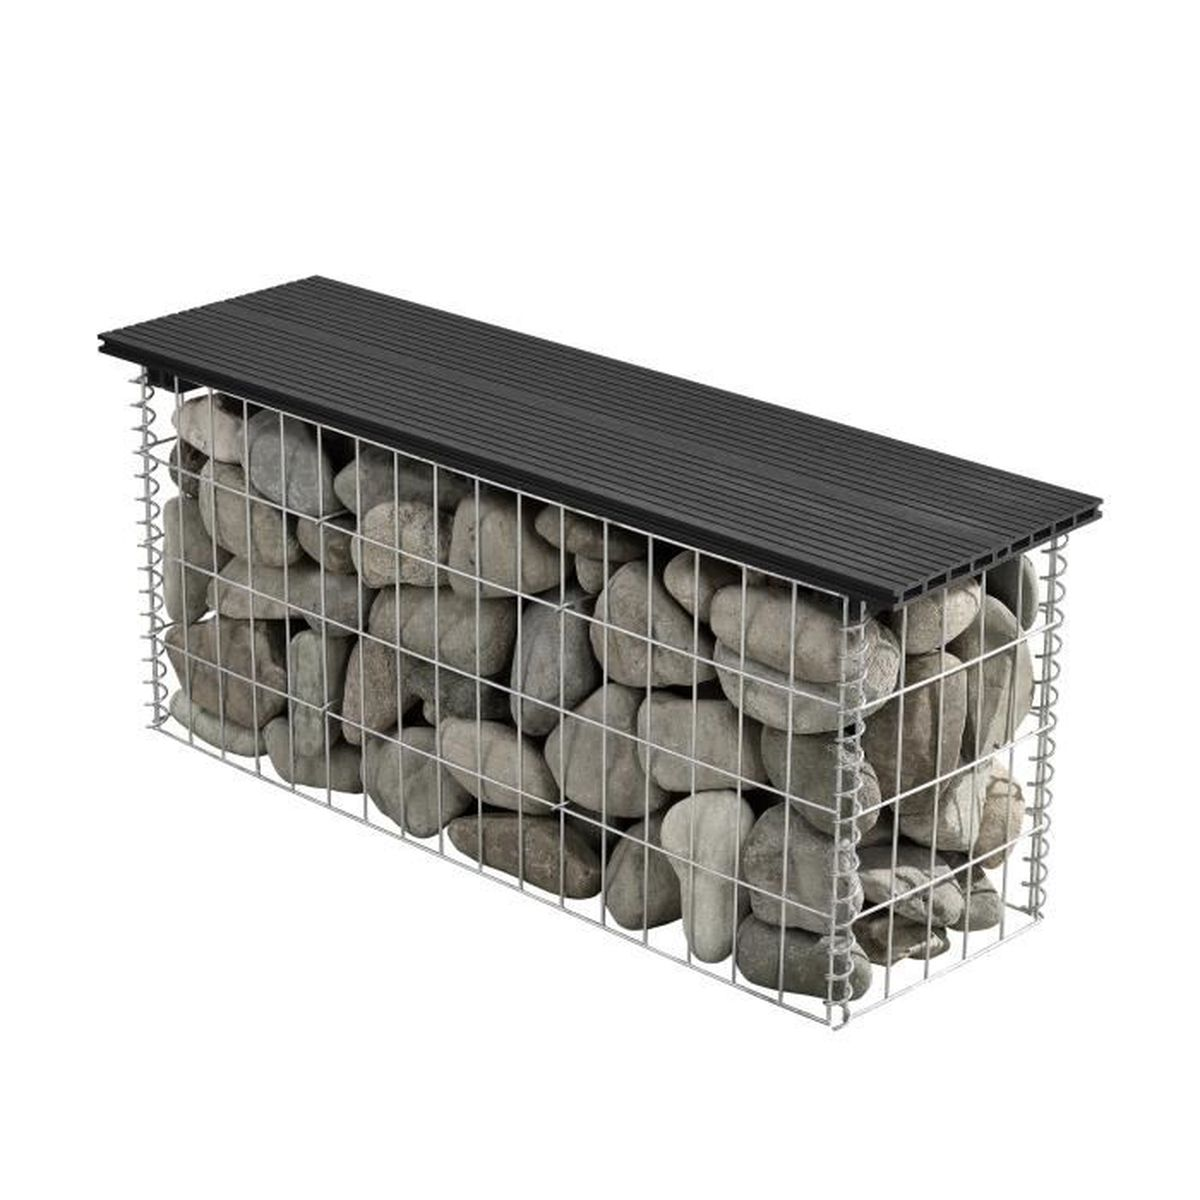 wpc banc du jardin gabion noir achat vente pierre. Black Bedroom Furniture Sets. Home Design Ideas